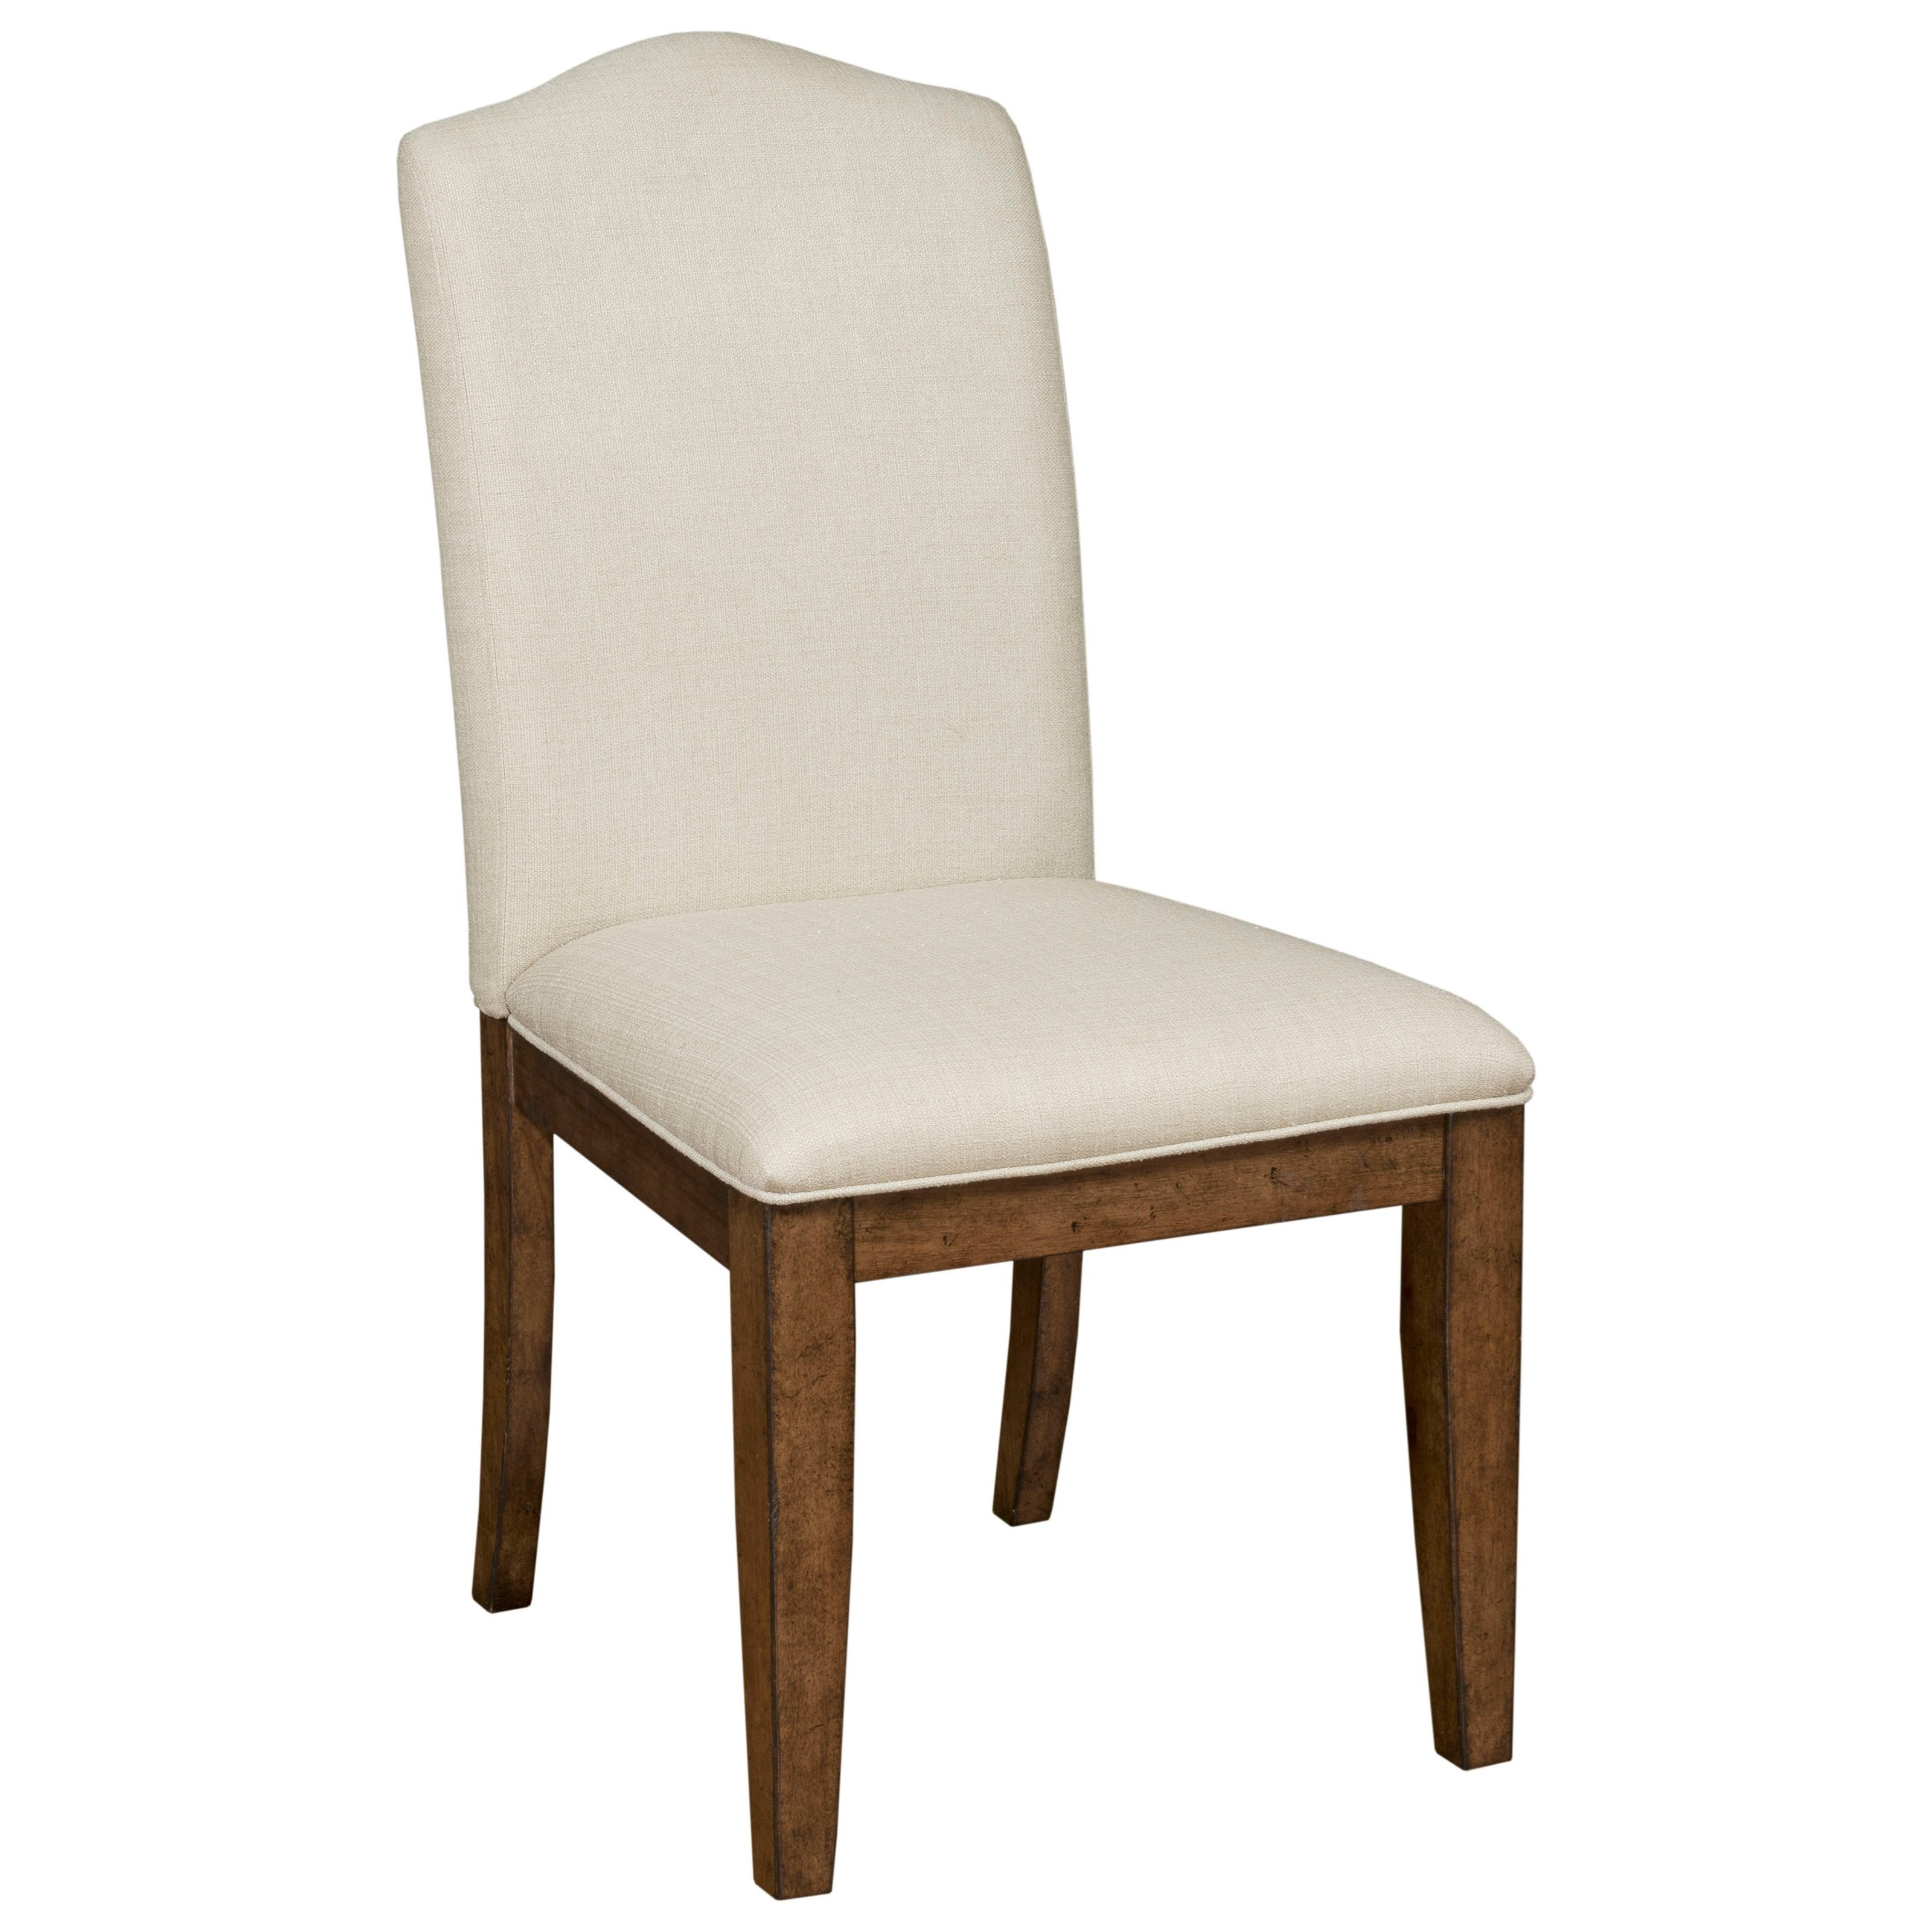 Nook Chair Kincaid Furniture The Nook 664 641 Parson 39s Style Side